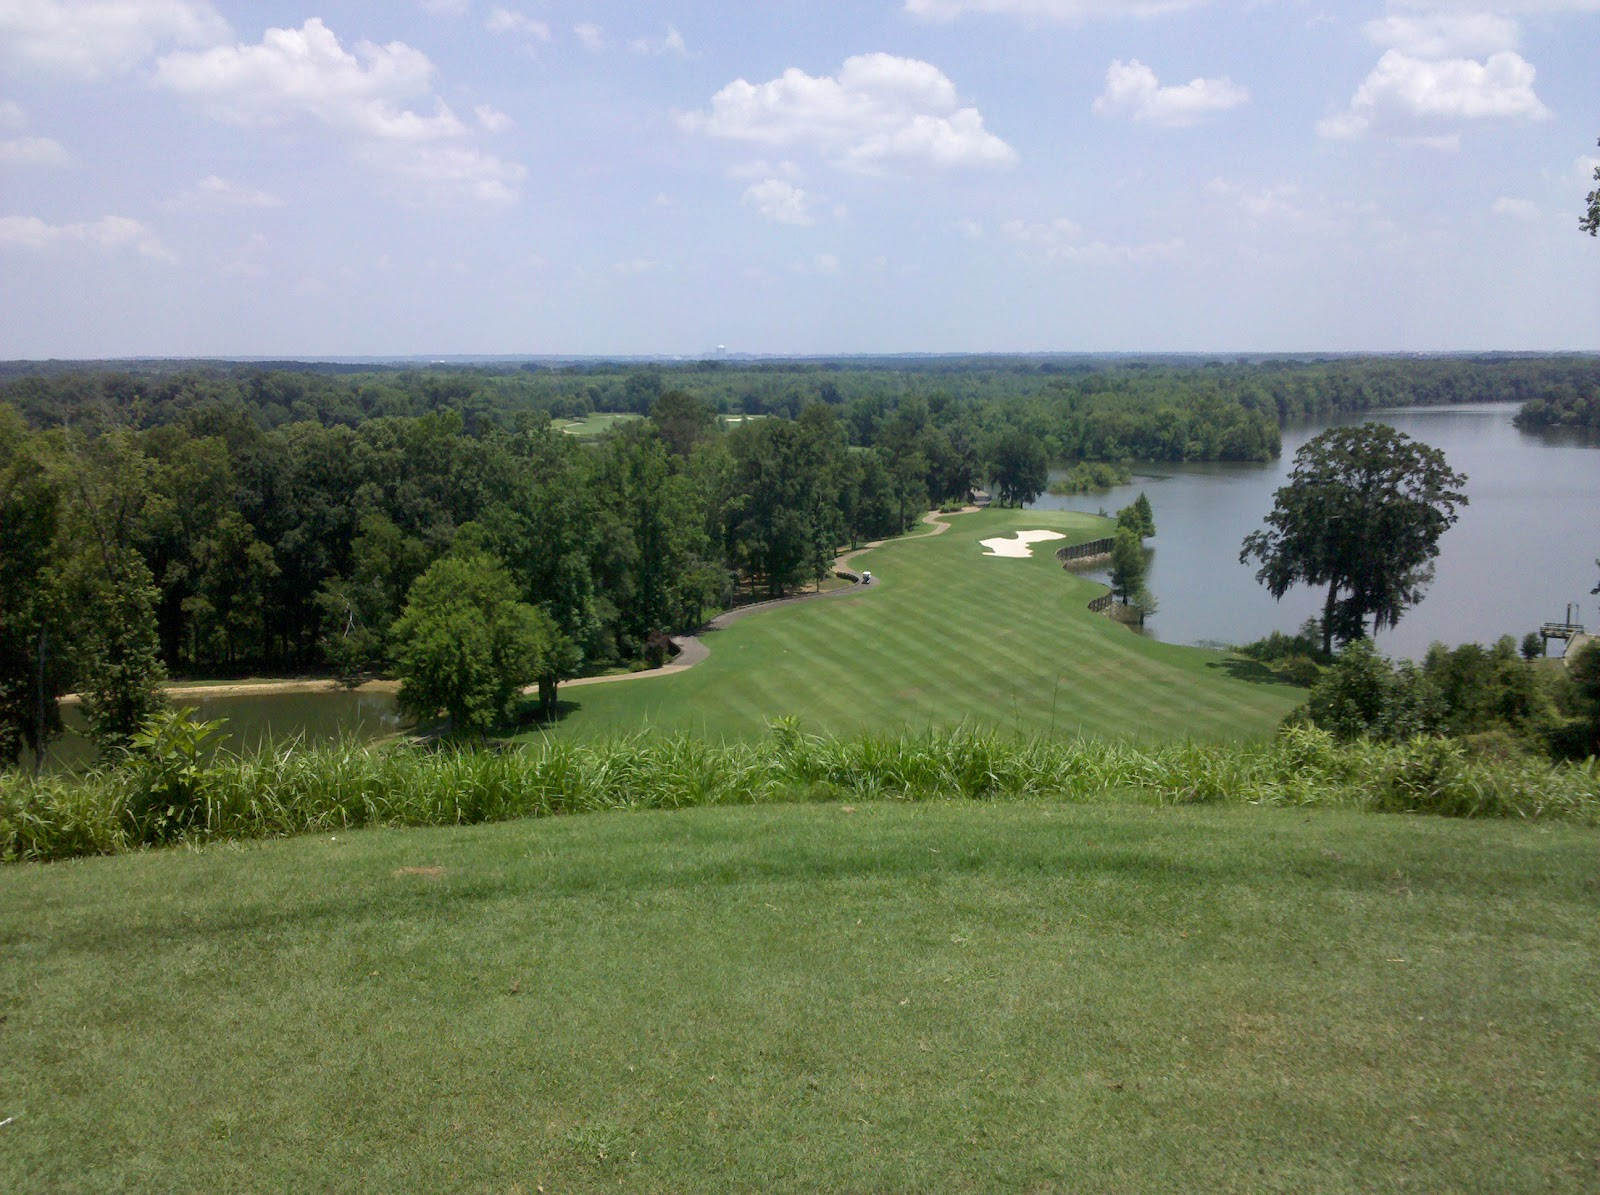 Hatton's Blog: A round on the Robert Trent Jones Golf Trail